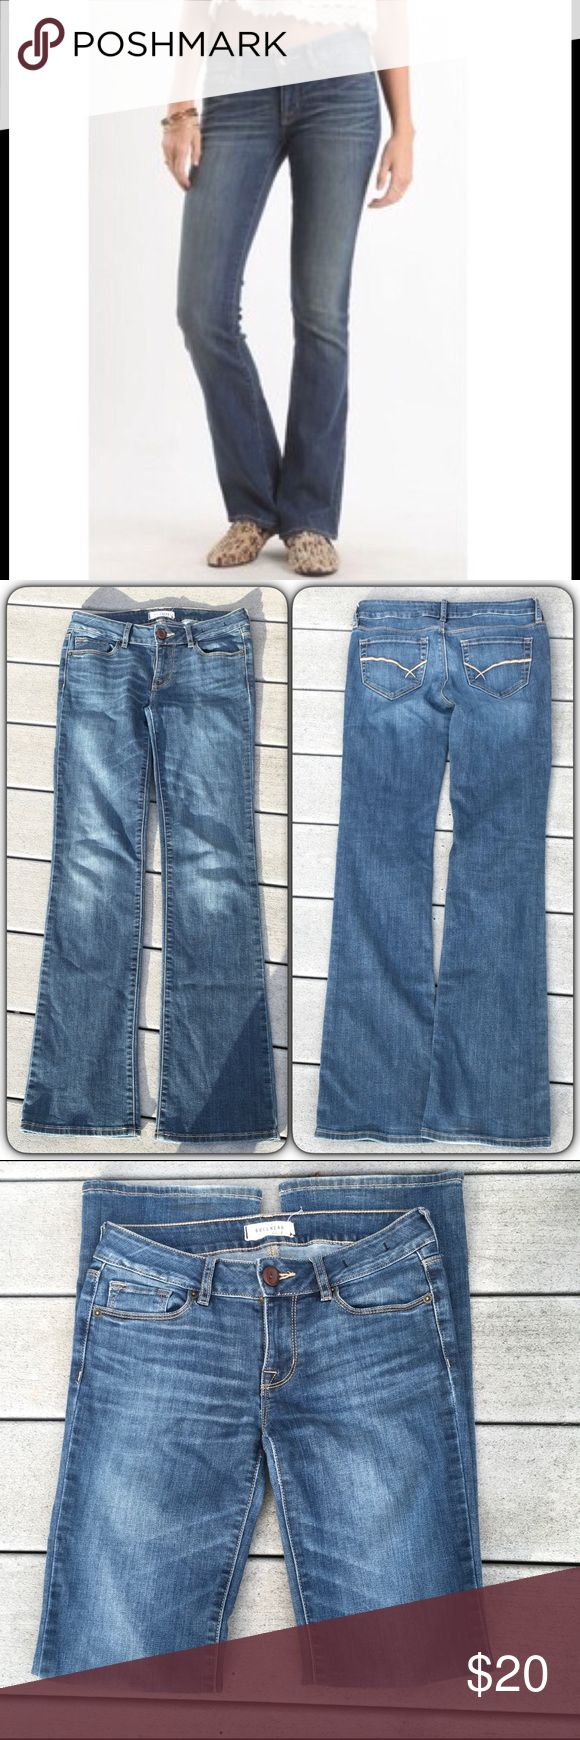 "🆕 Bullhead Black Bootcut Jeans Very good condition with lots of life left! Soft, worn in Bootcut jeans, size 3. Right bottom hem has very minimal signs of wear/distressed denim and a small linear dark mark (see pic 4), but barely noticeable. 78% cotton, 21% polyester, 1% spandex. Waist measures about 13.5"" across; front rise: 7.5""; inseam: 31"" Bullhead Jeans Boot Cut"